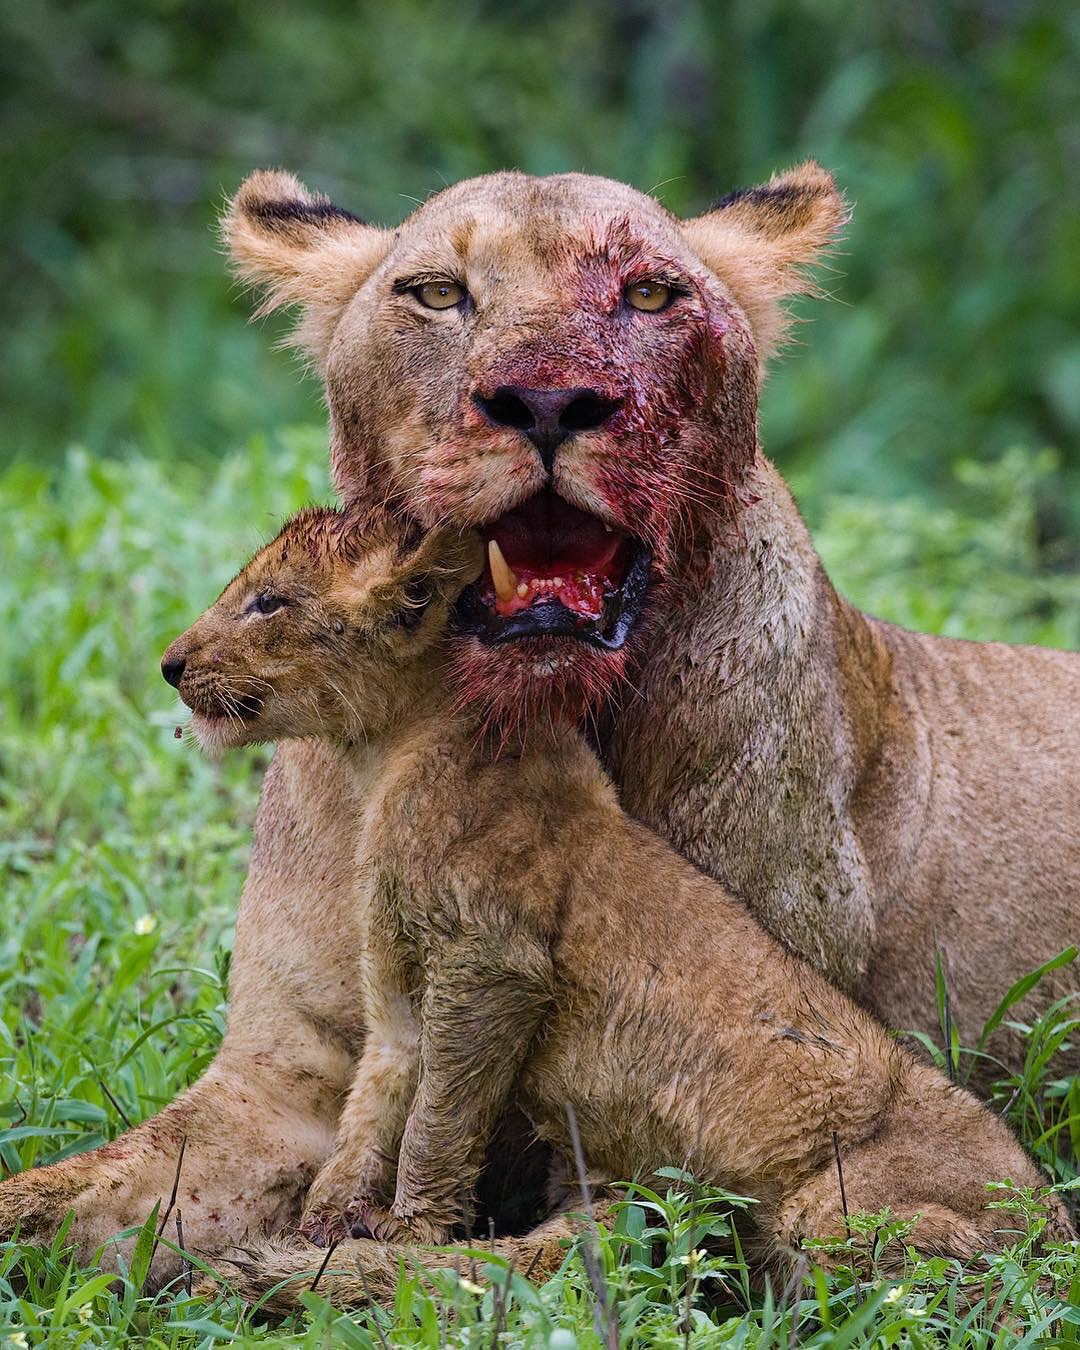 This is by far the most dramatic wildlife photograph ever taken by Mark.